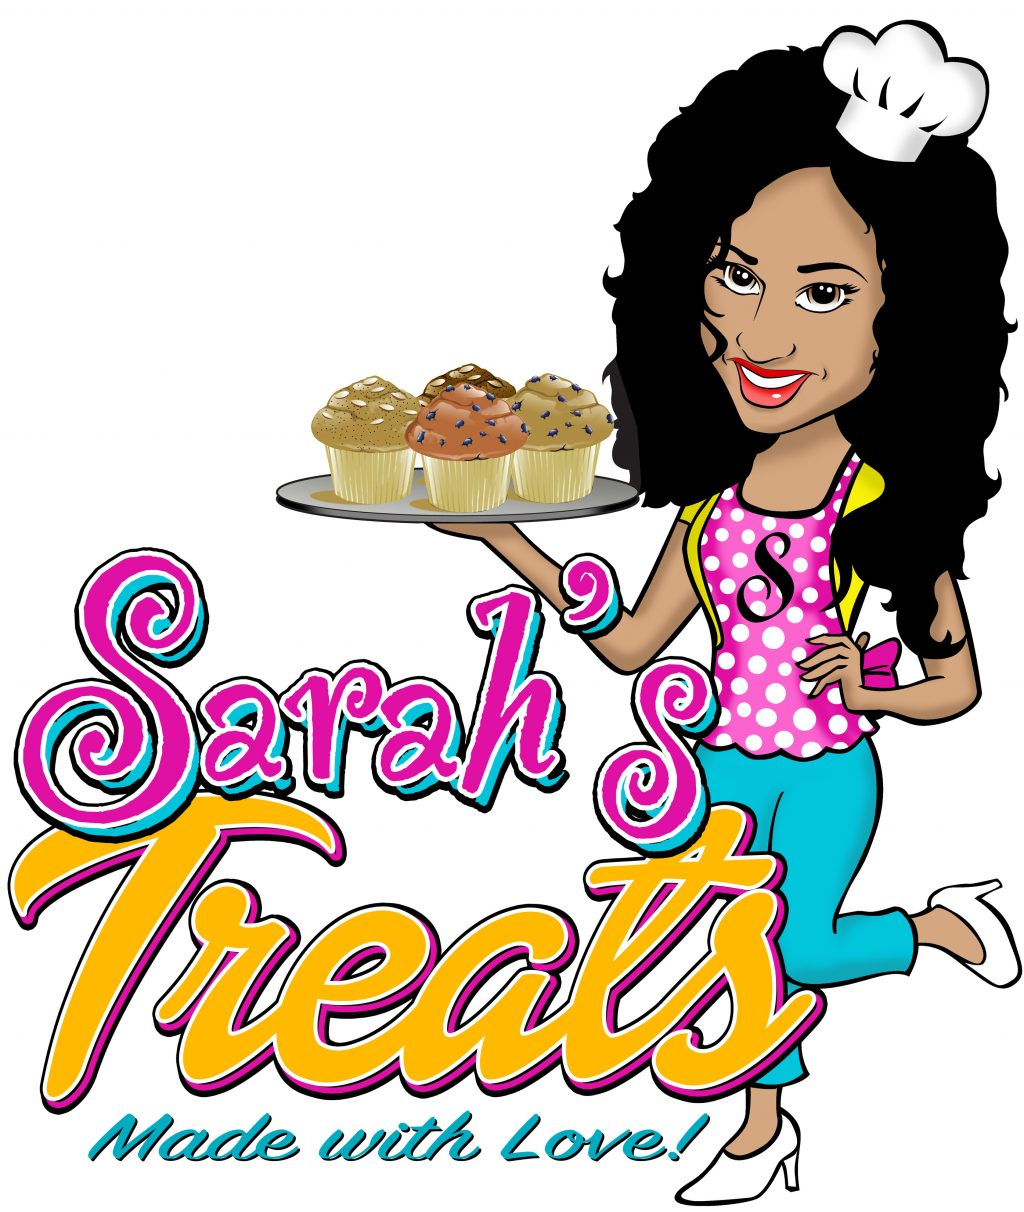 Sarah's Treats Tall.jpg